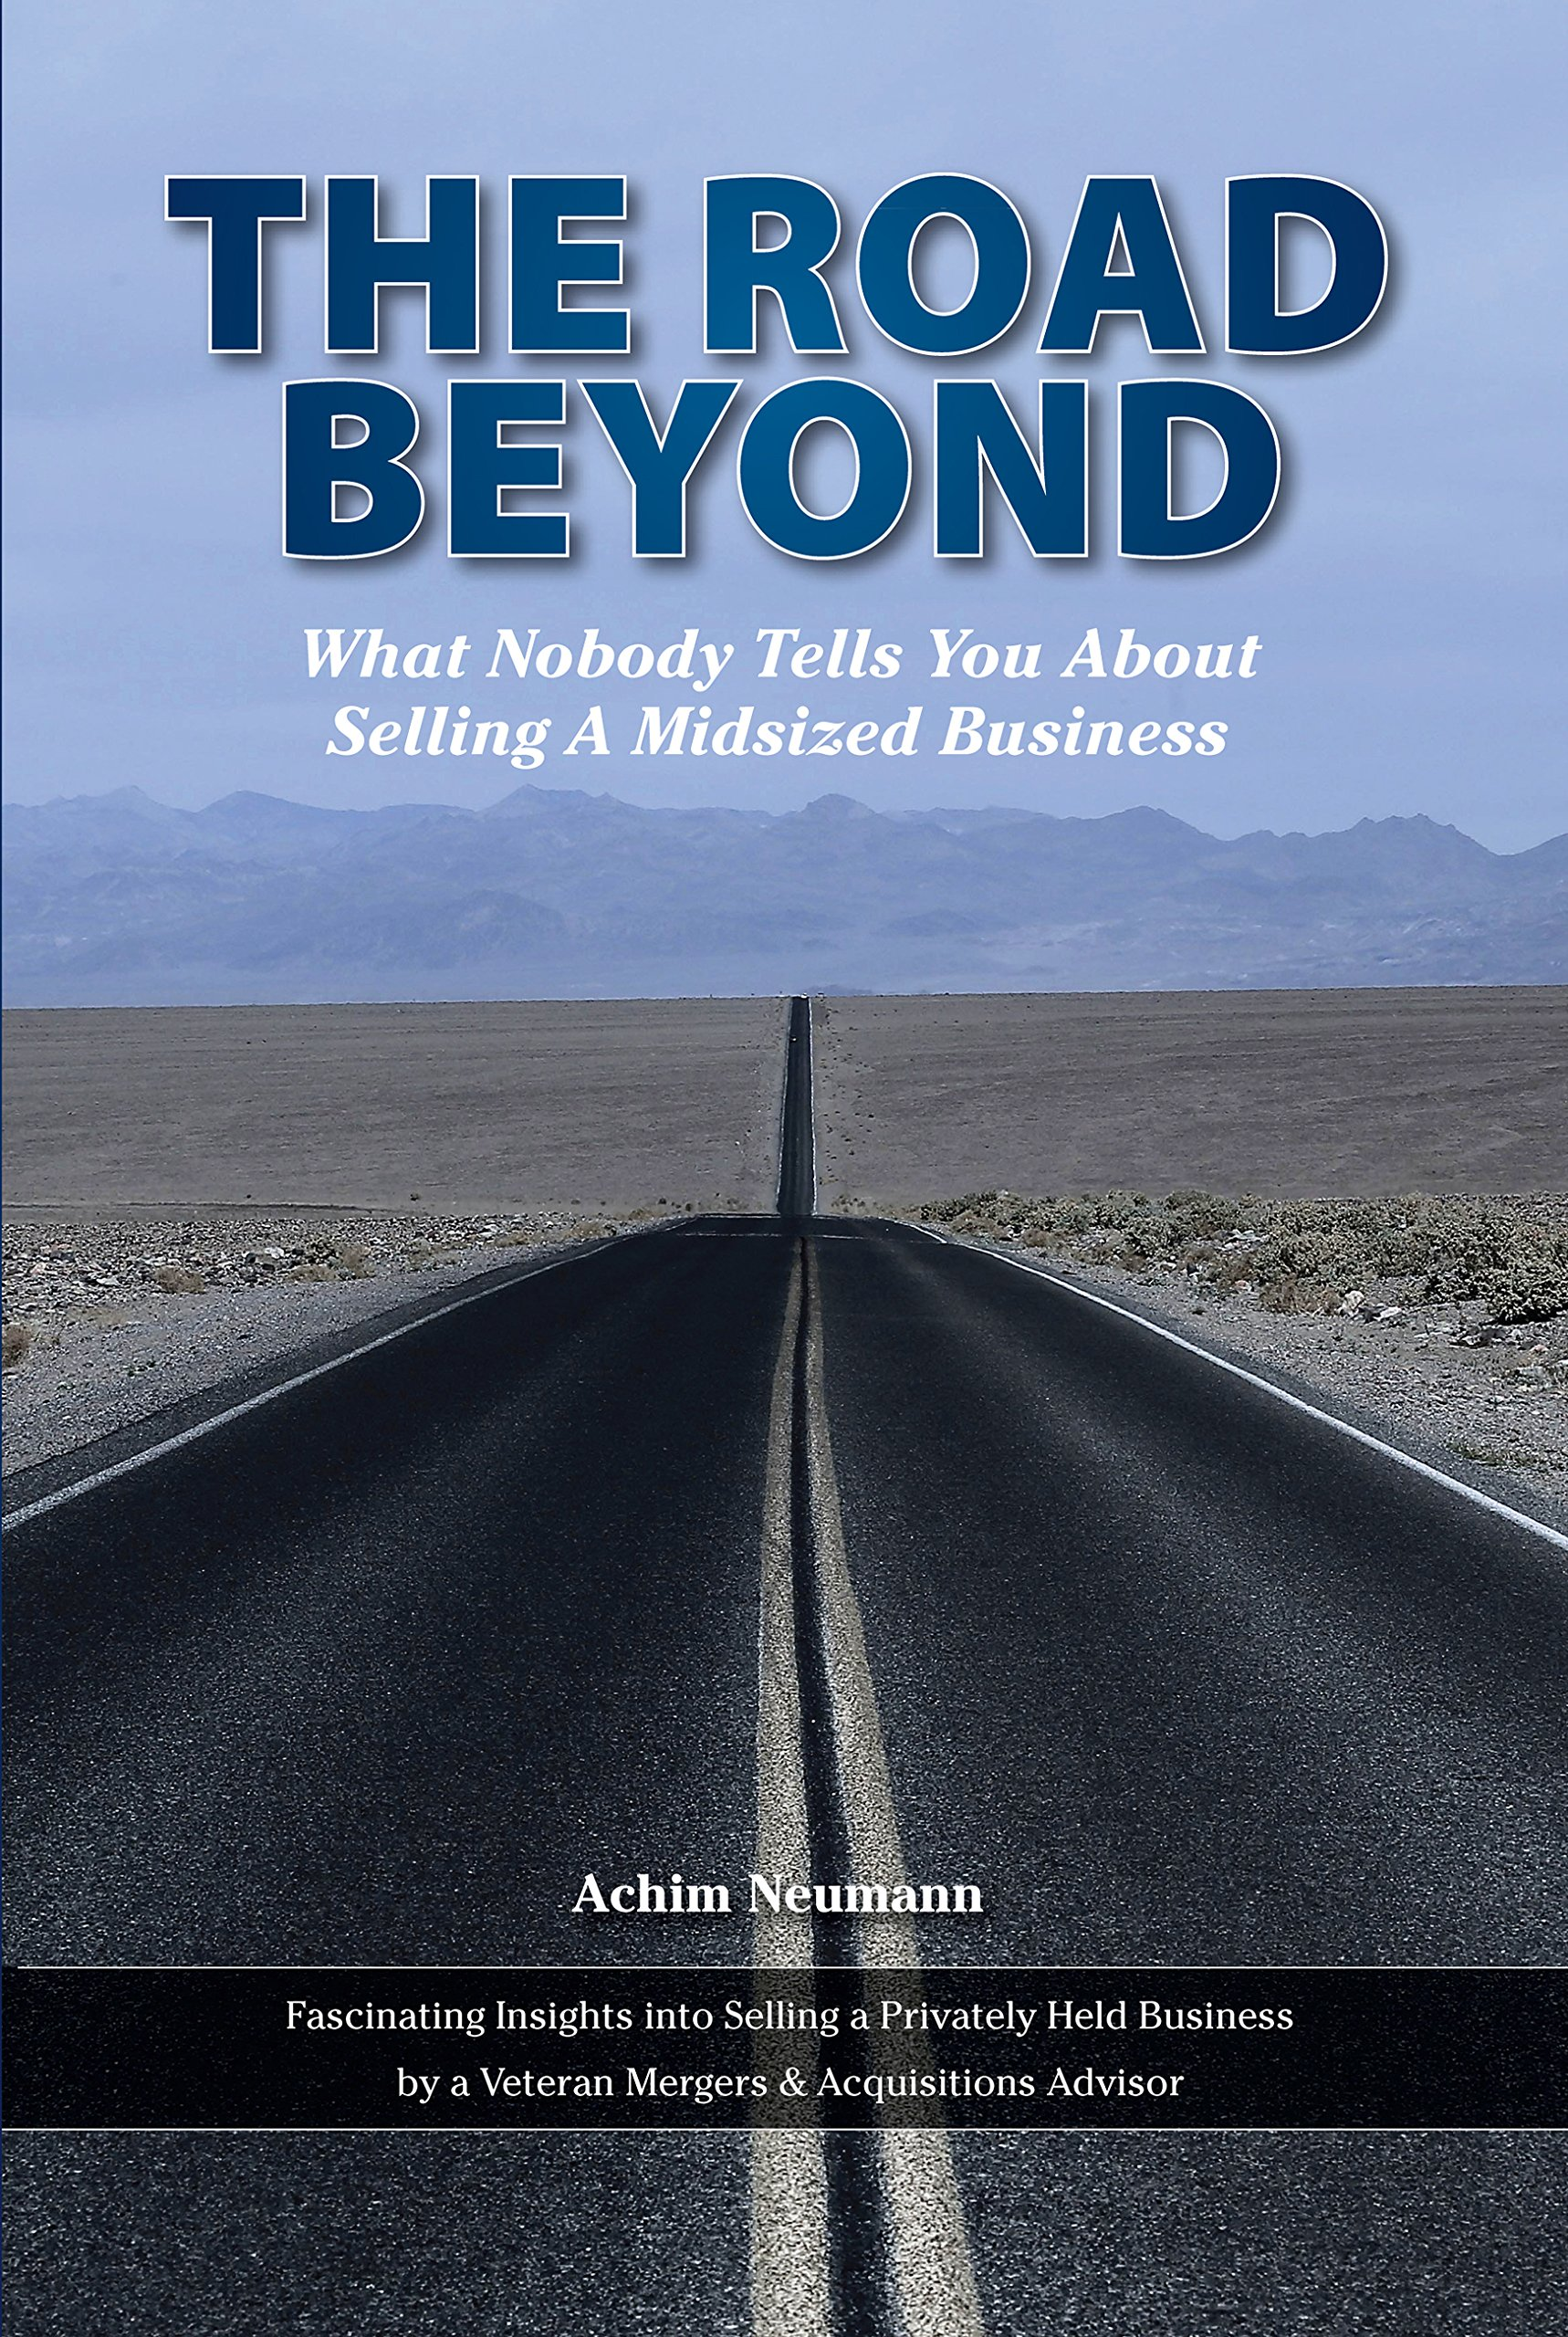 The Road Beyond ...: What Nobody Tells You About Selling a Midsized Business